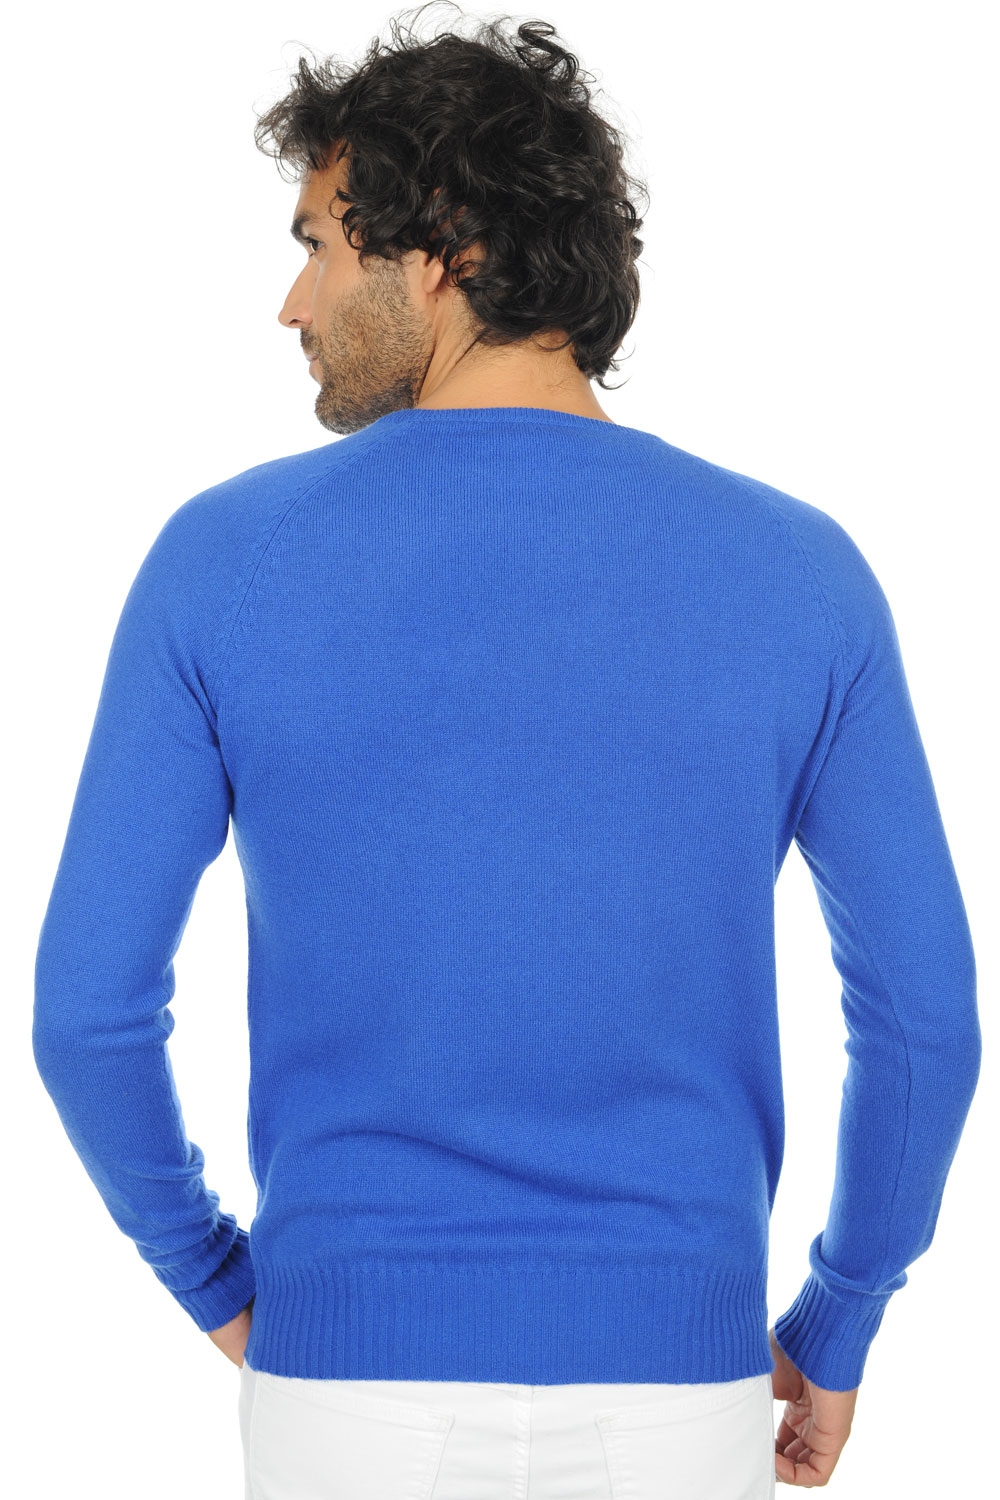 cachemire pull homme col rond youcef bleu lapis m